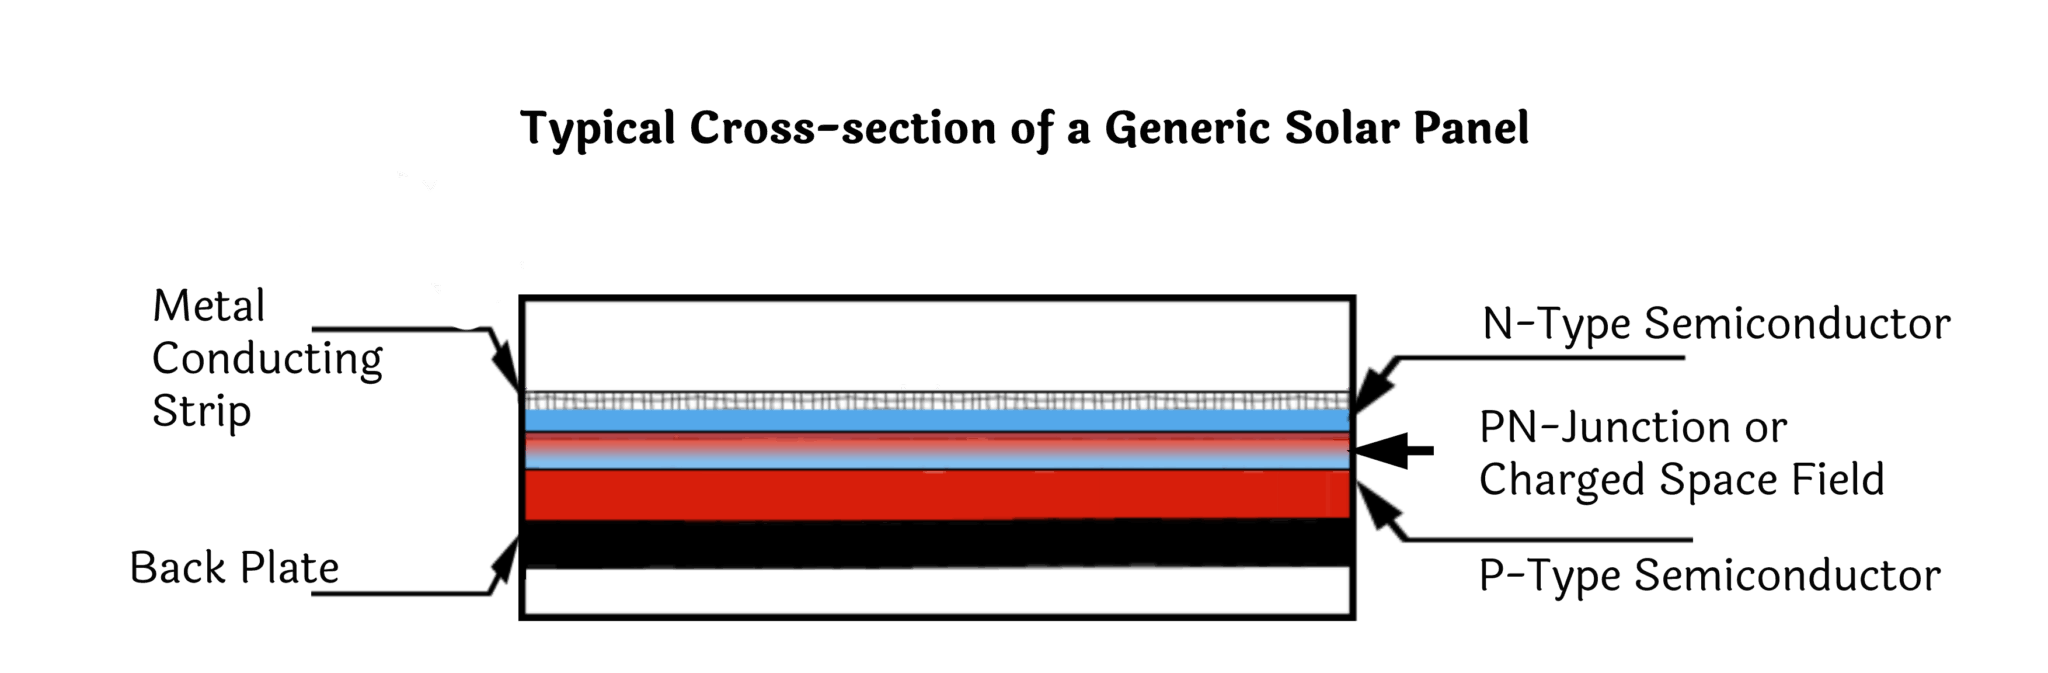 Cross-section of a Solar Cell